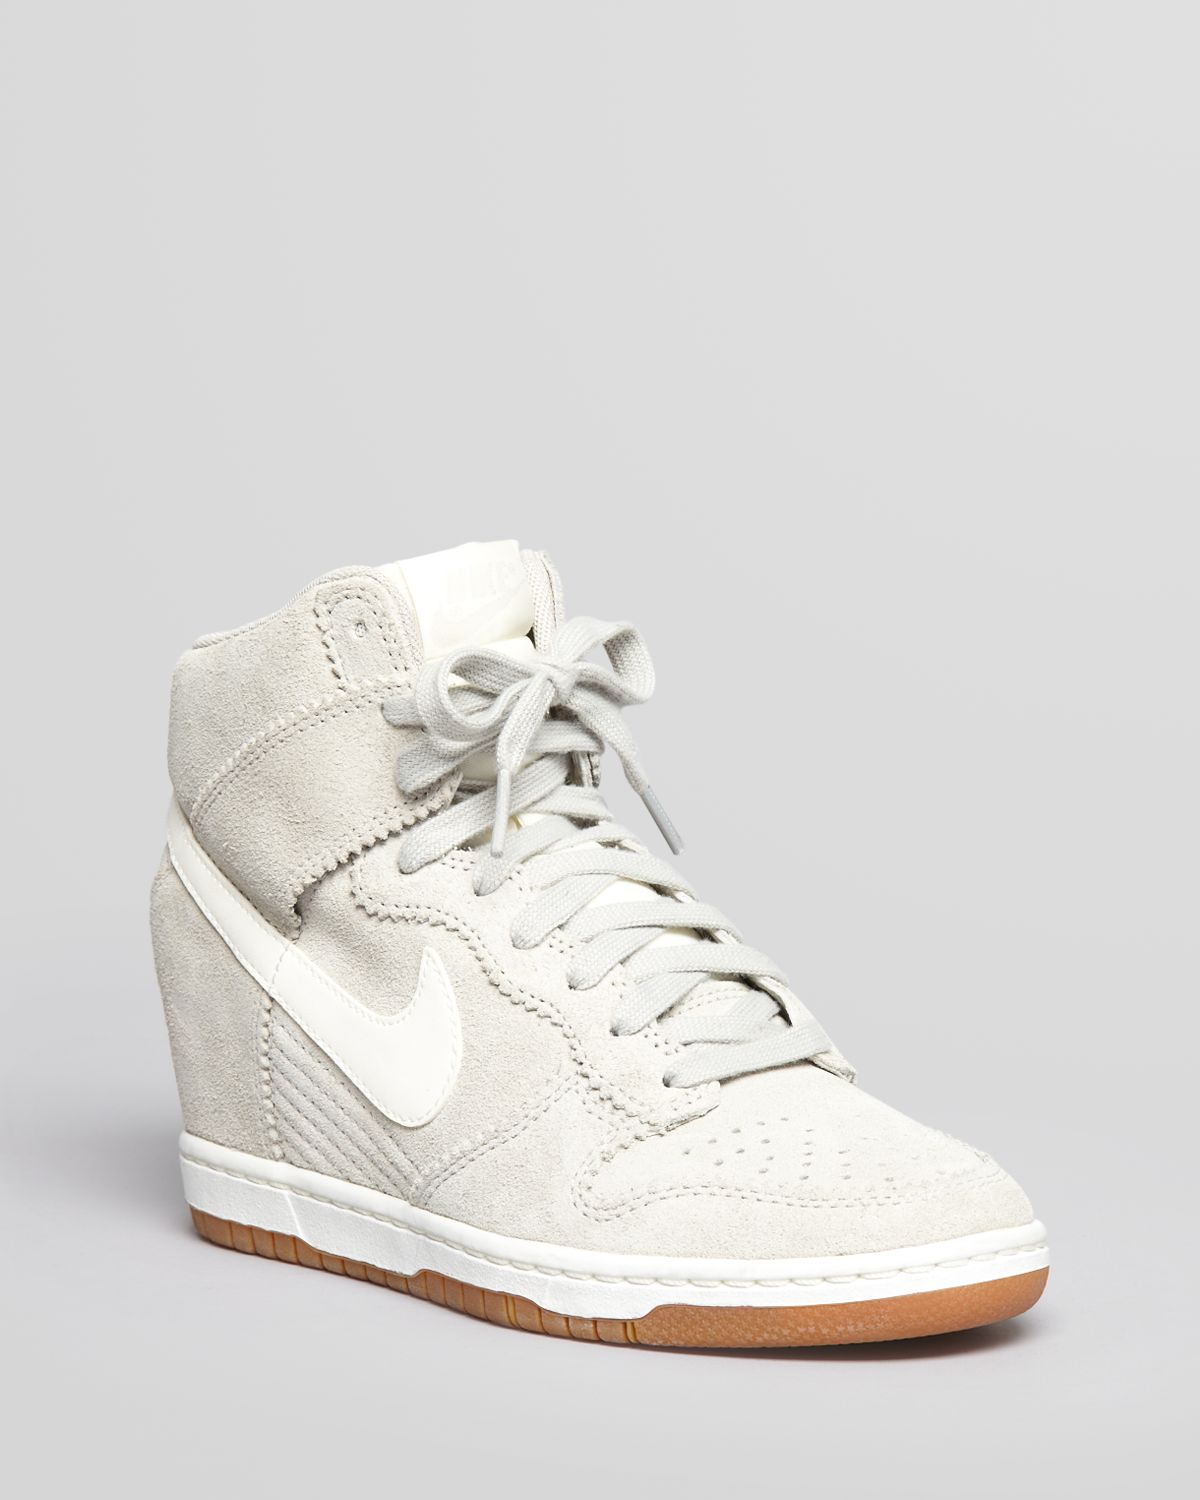 sneaker wedges nike white images. Black Bedroom Furniture Sets. Home Design Ideas